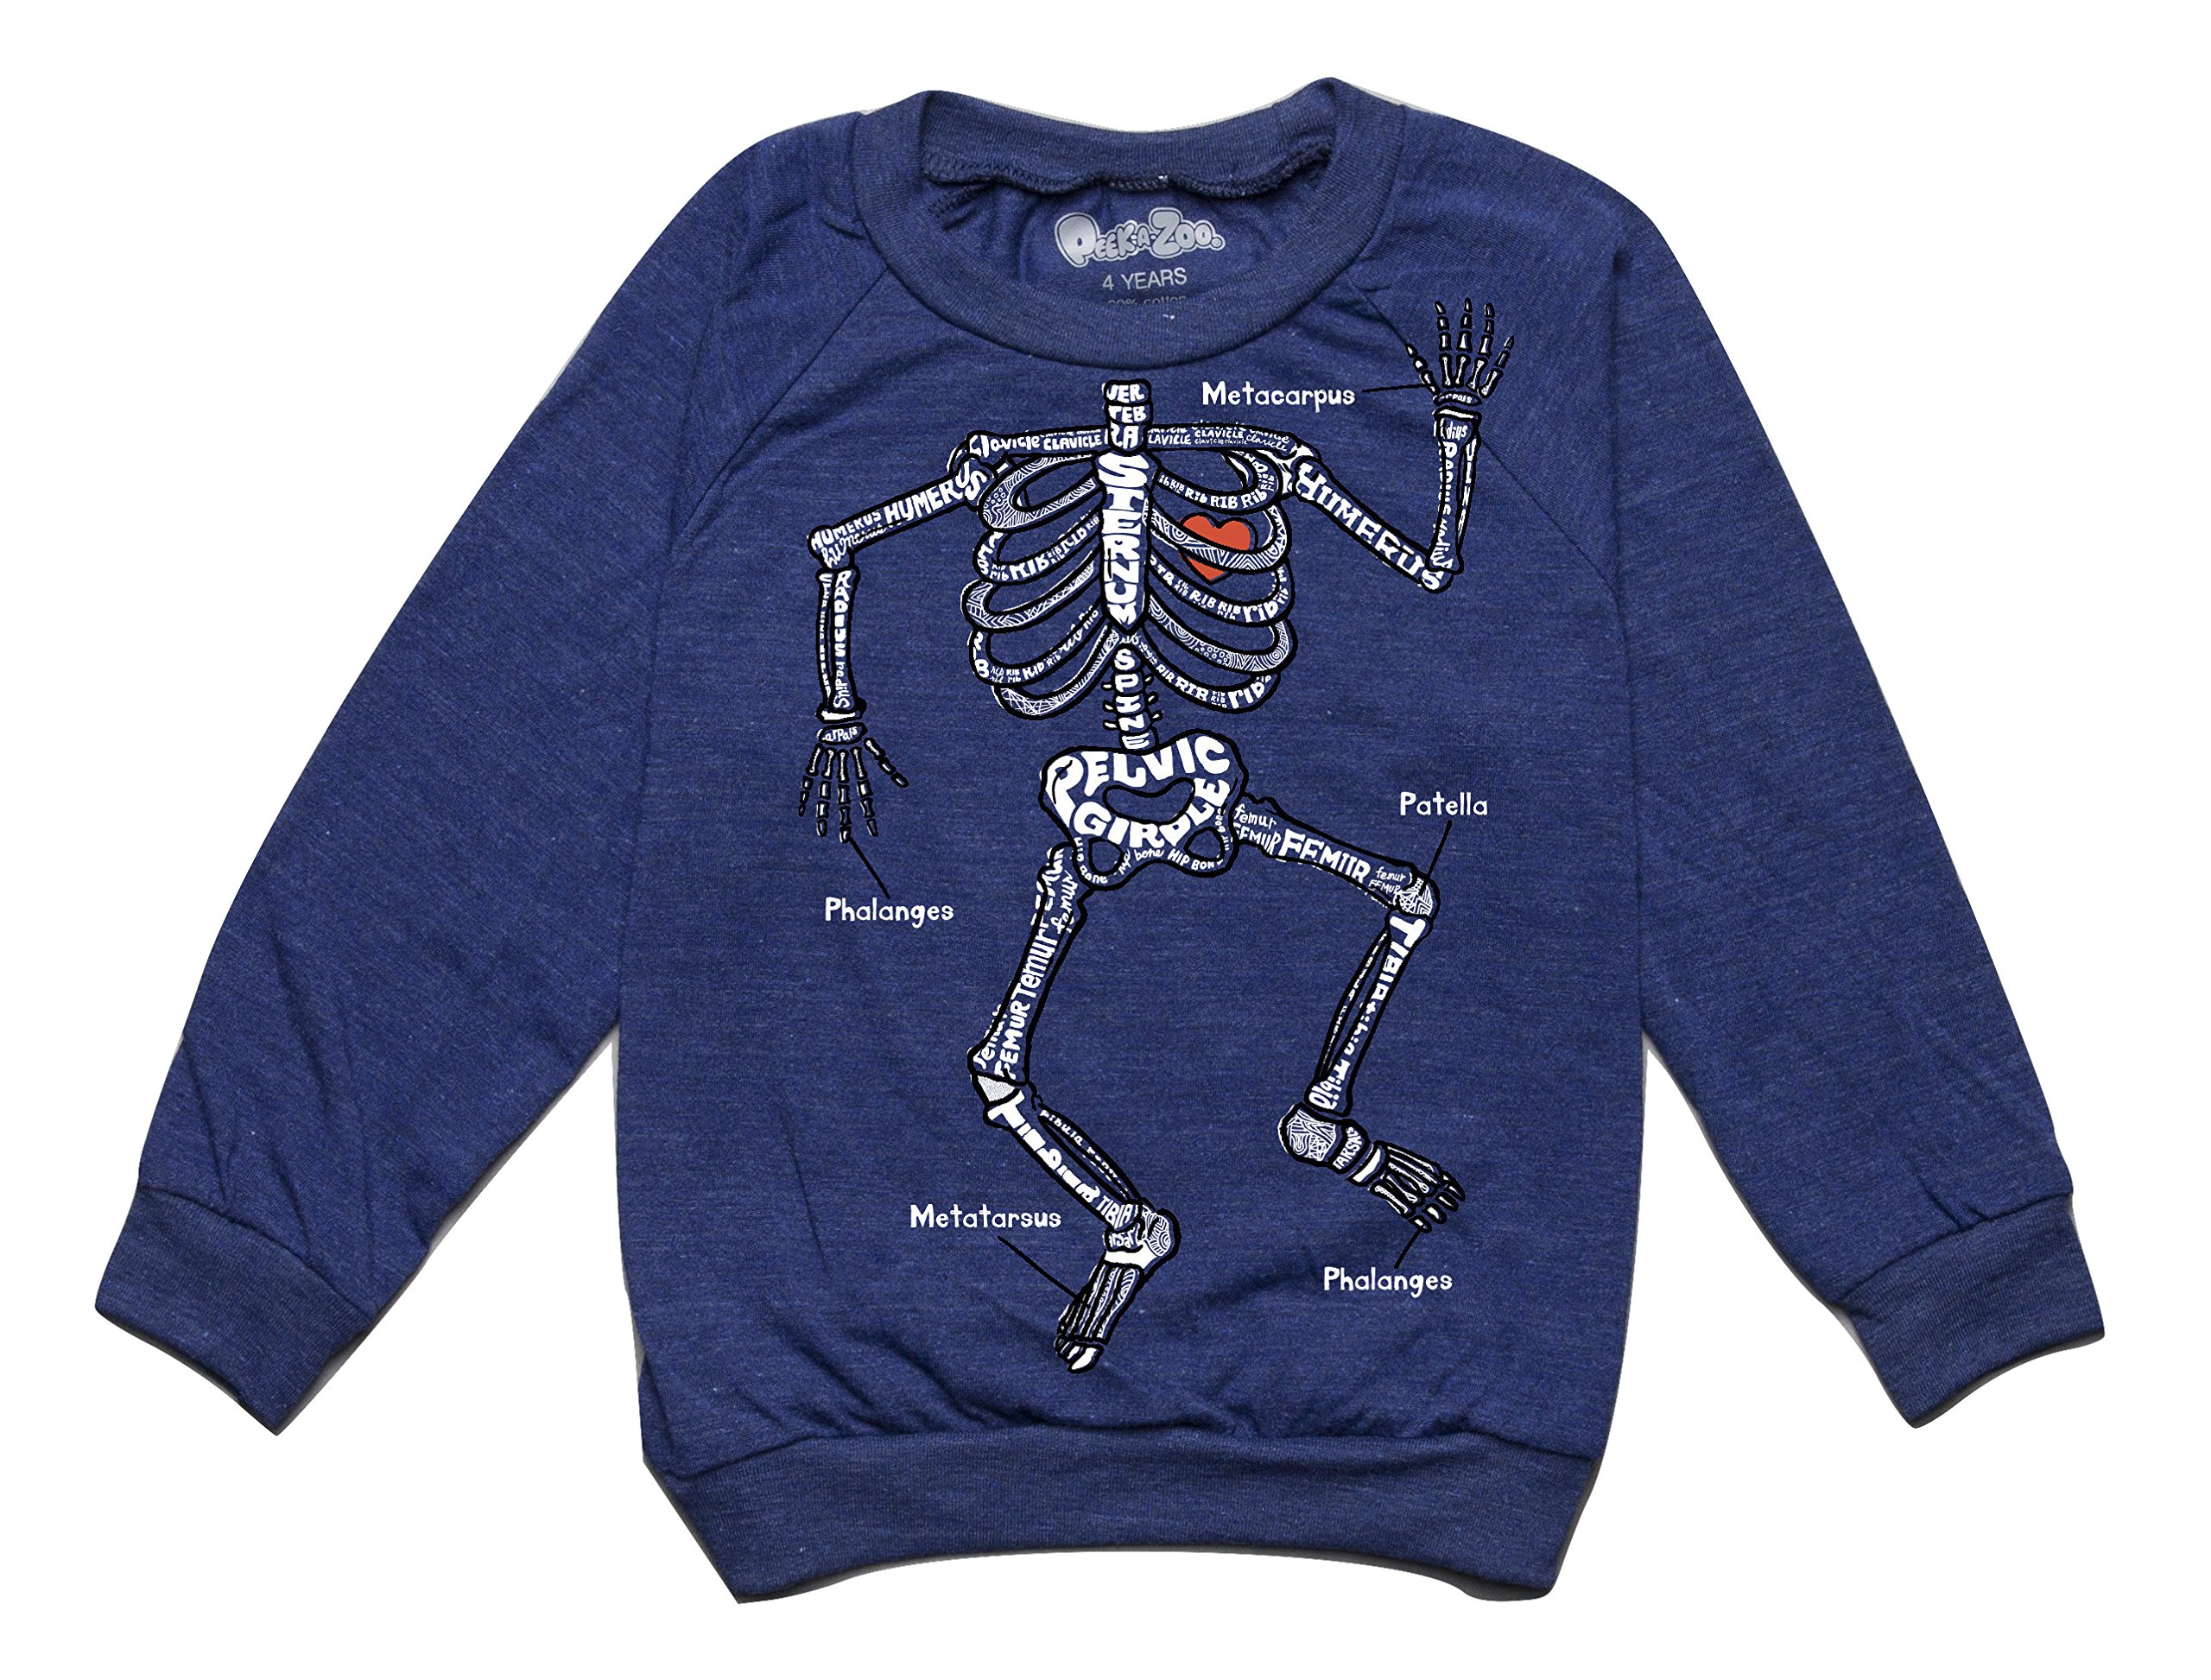 Peek-A-Zoo Toddler Longsleeve Become an Animal Pullover - Skeleton Navy - 6T